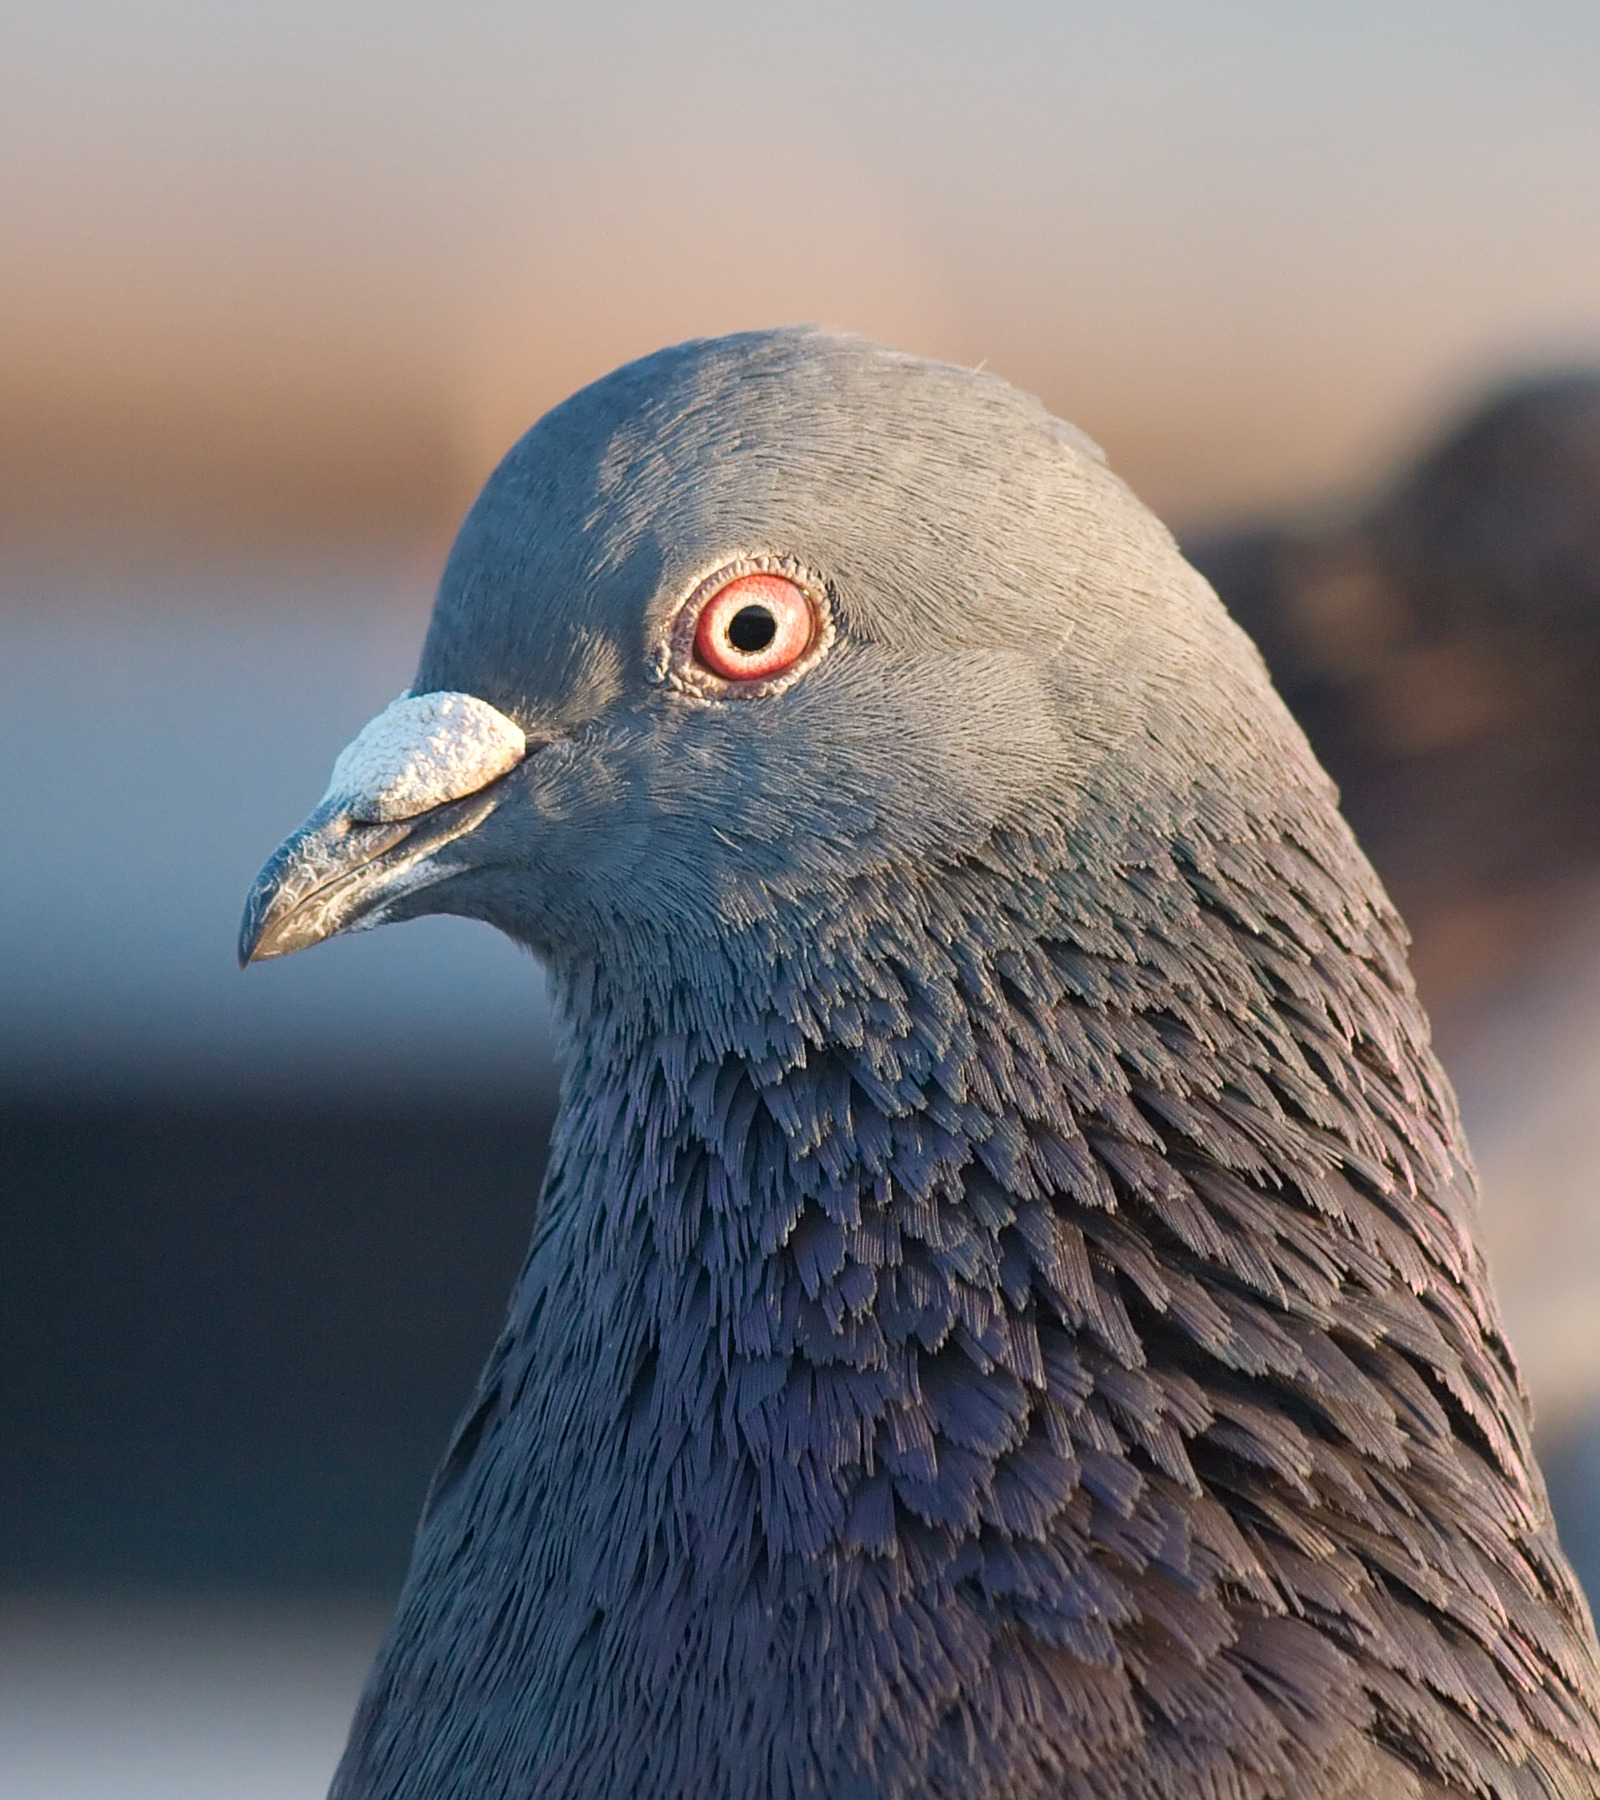 A photograph of a rock pigeon zoomed in on its head with its white operculum showing.